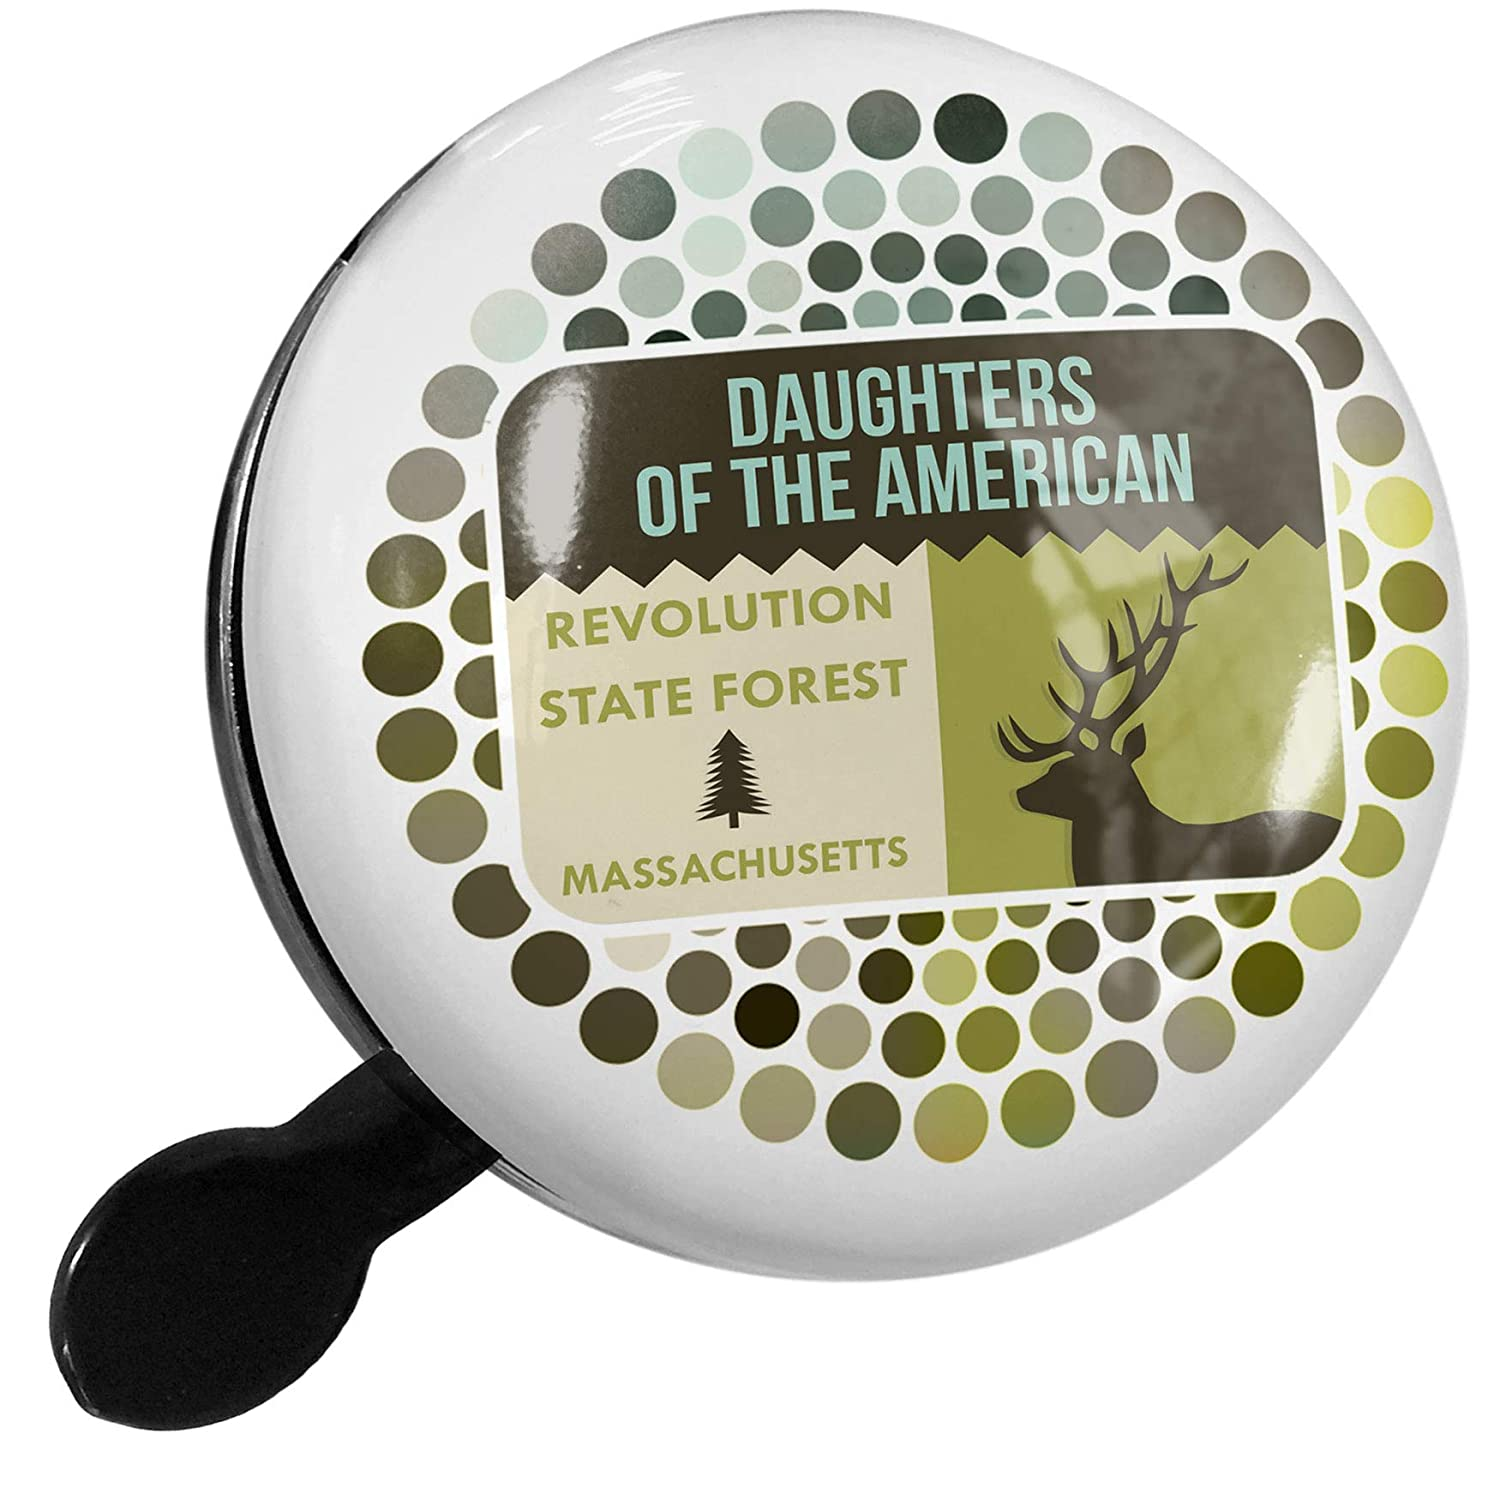 Amazon.com : NEONBLOND Bike Bell National US Forest Daughters of The American Revolution State Forest Scooter or Bicycle Horn : Sports & Outdoors